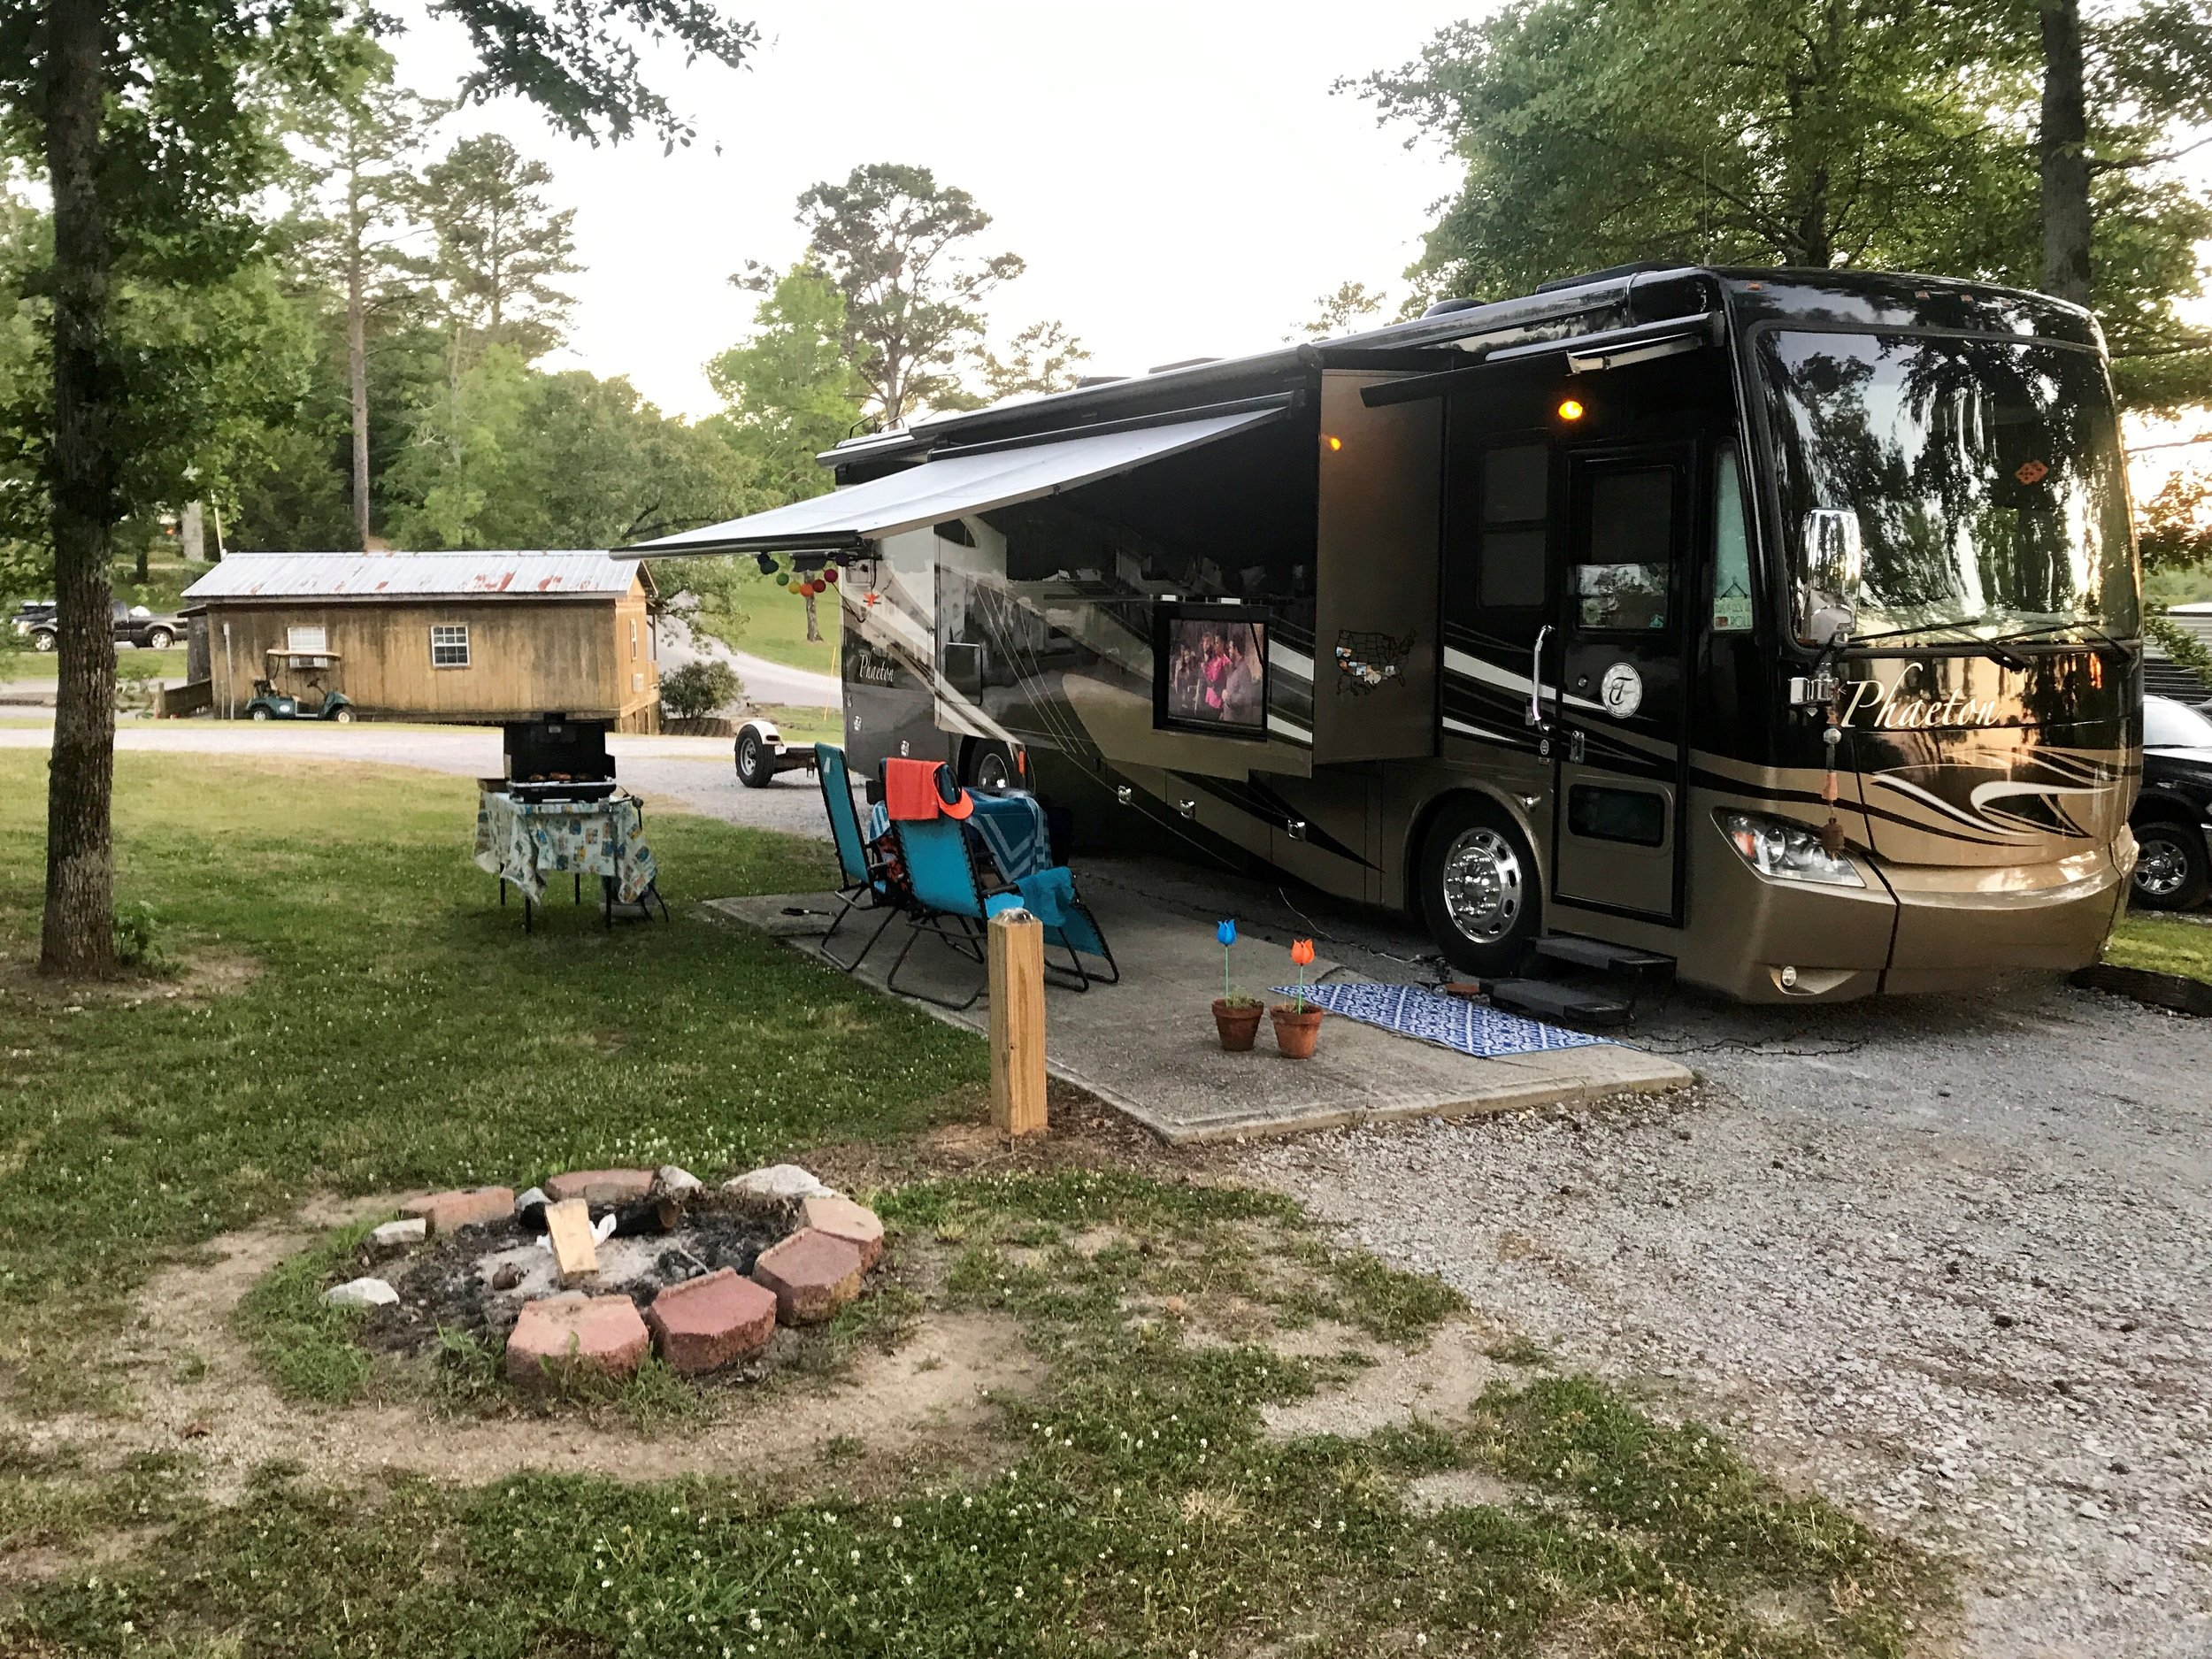 All setup in our spot at Rolling Hills Campground